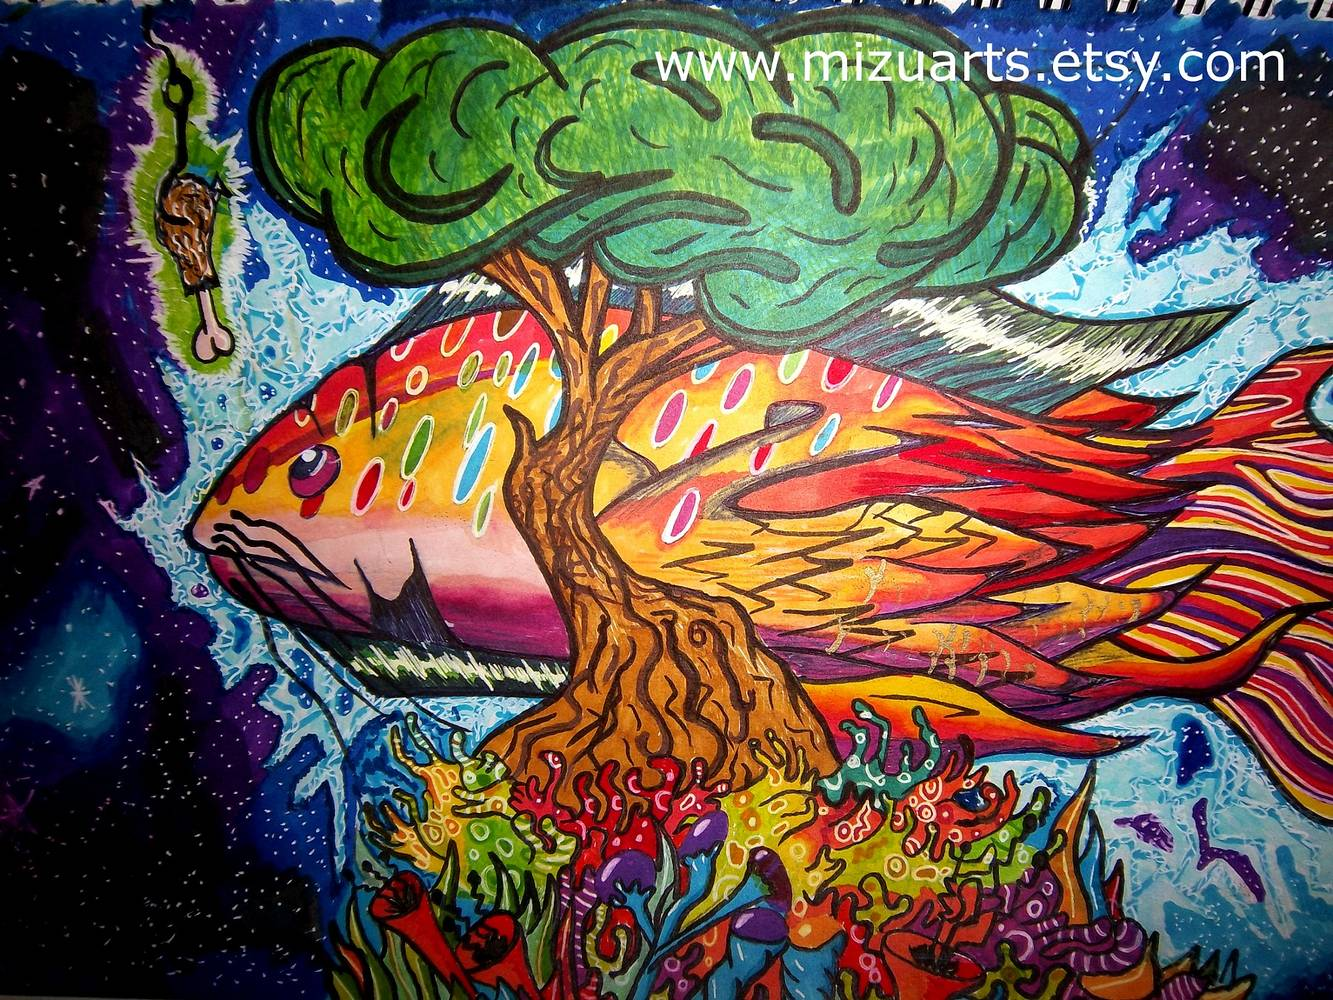 Electric Rainbow Catfish by Isaac Carpenter